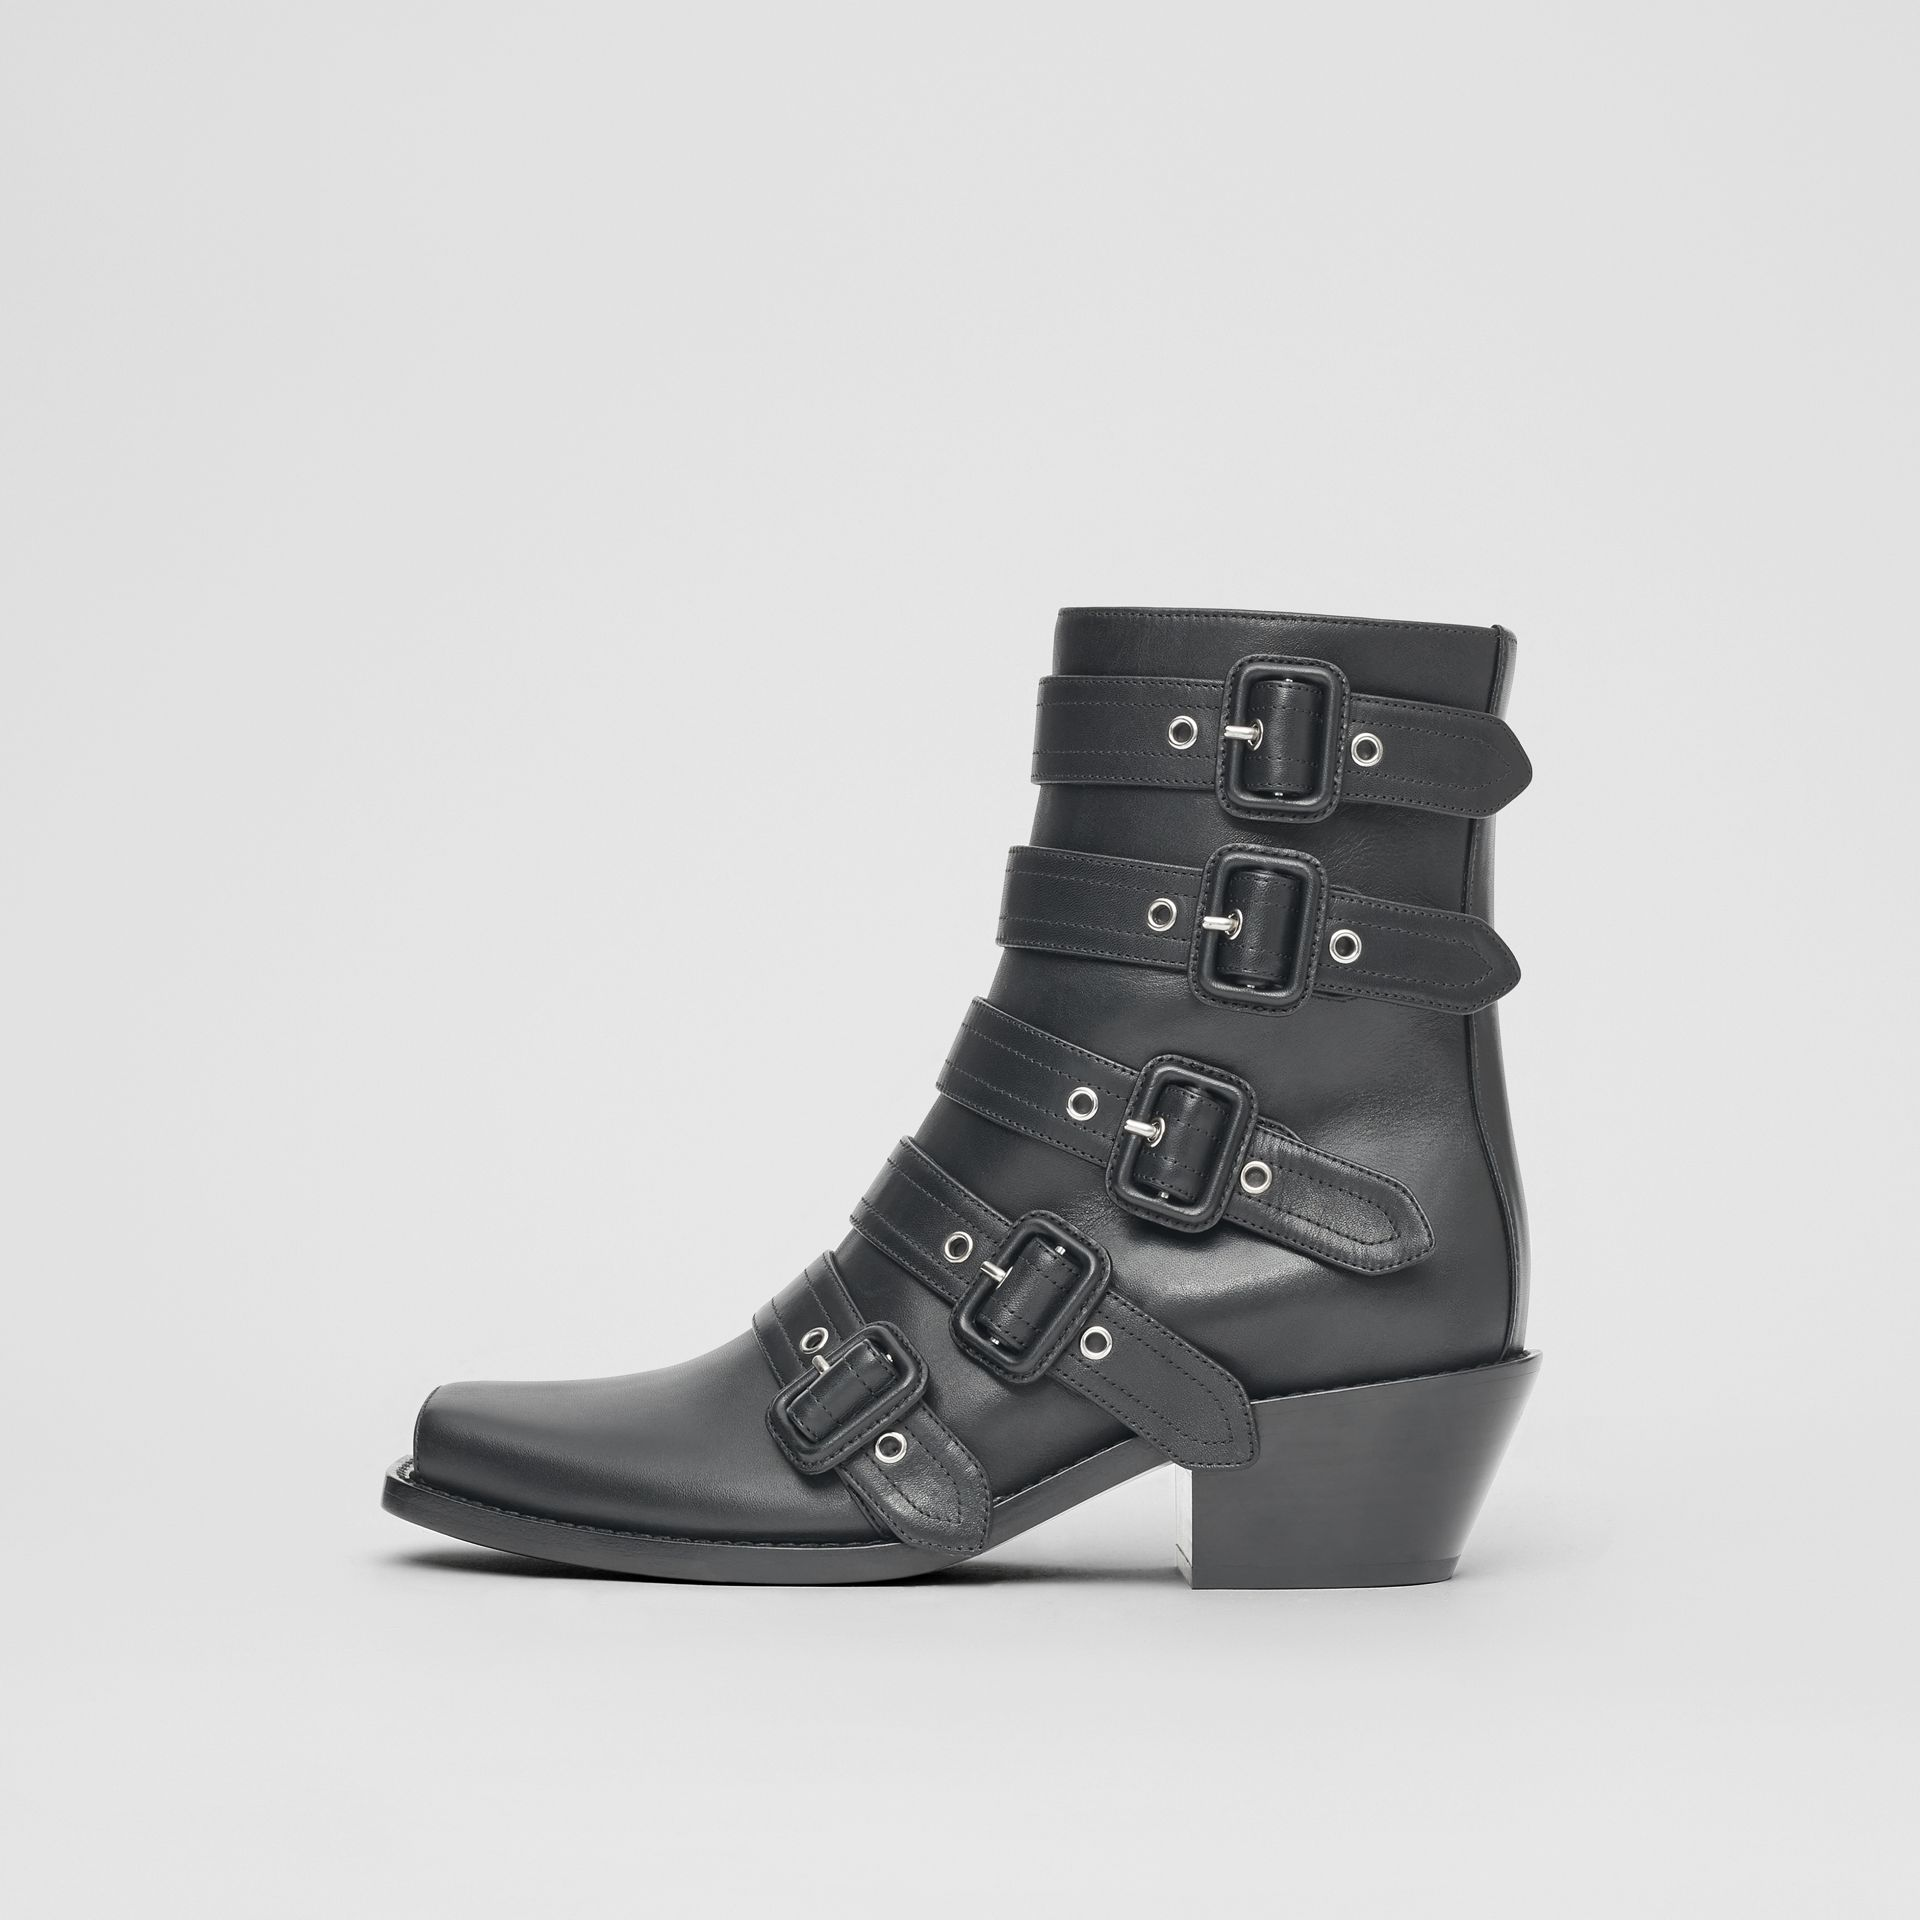 Buckled Leather Peep-toe Ankle Boots in Black - Women | Burberry United Kingdom - gallery image 6